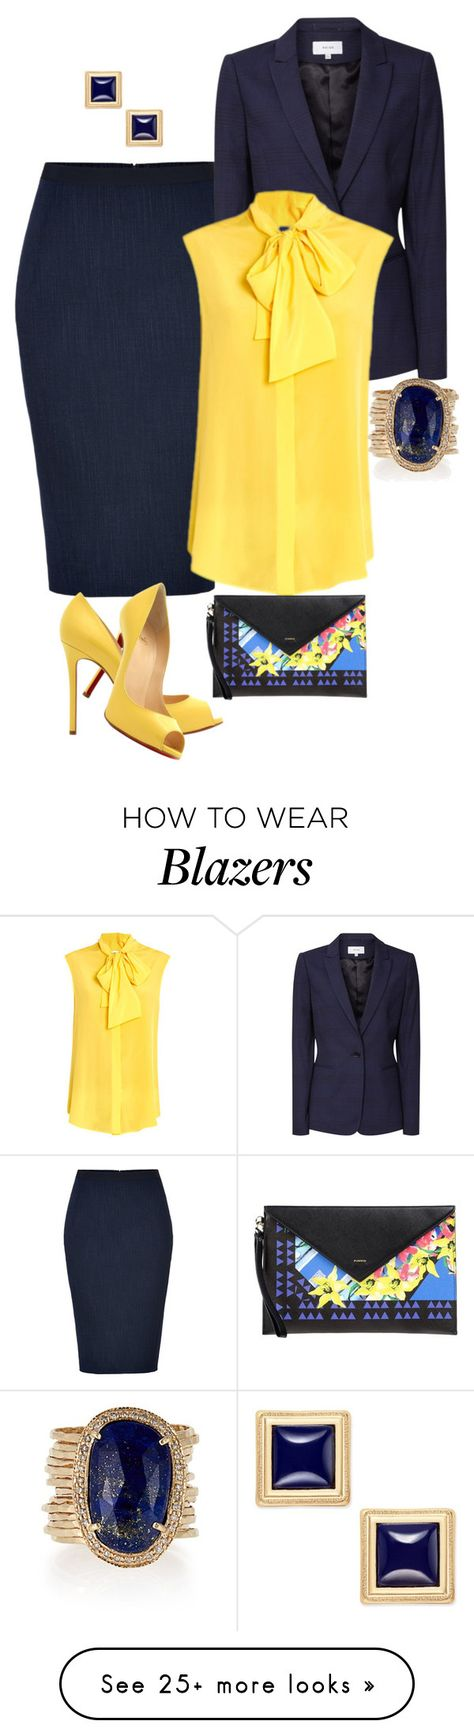 """""""Yellow / Blue"""" by carrie1969 on Polyvore featuring Donna Karan, Christian Louboutin, Reiss, Moschino, Jacquie Aiche, INC International Concepts and Pinko"""